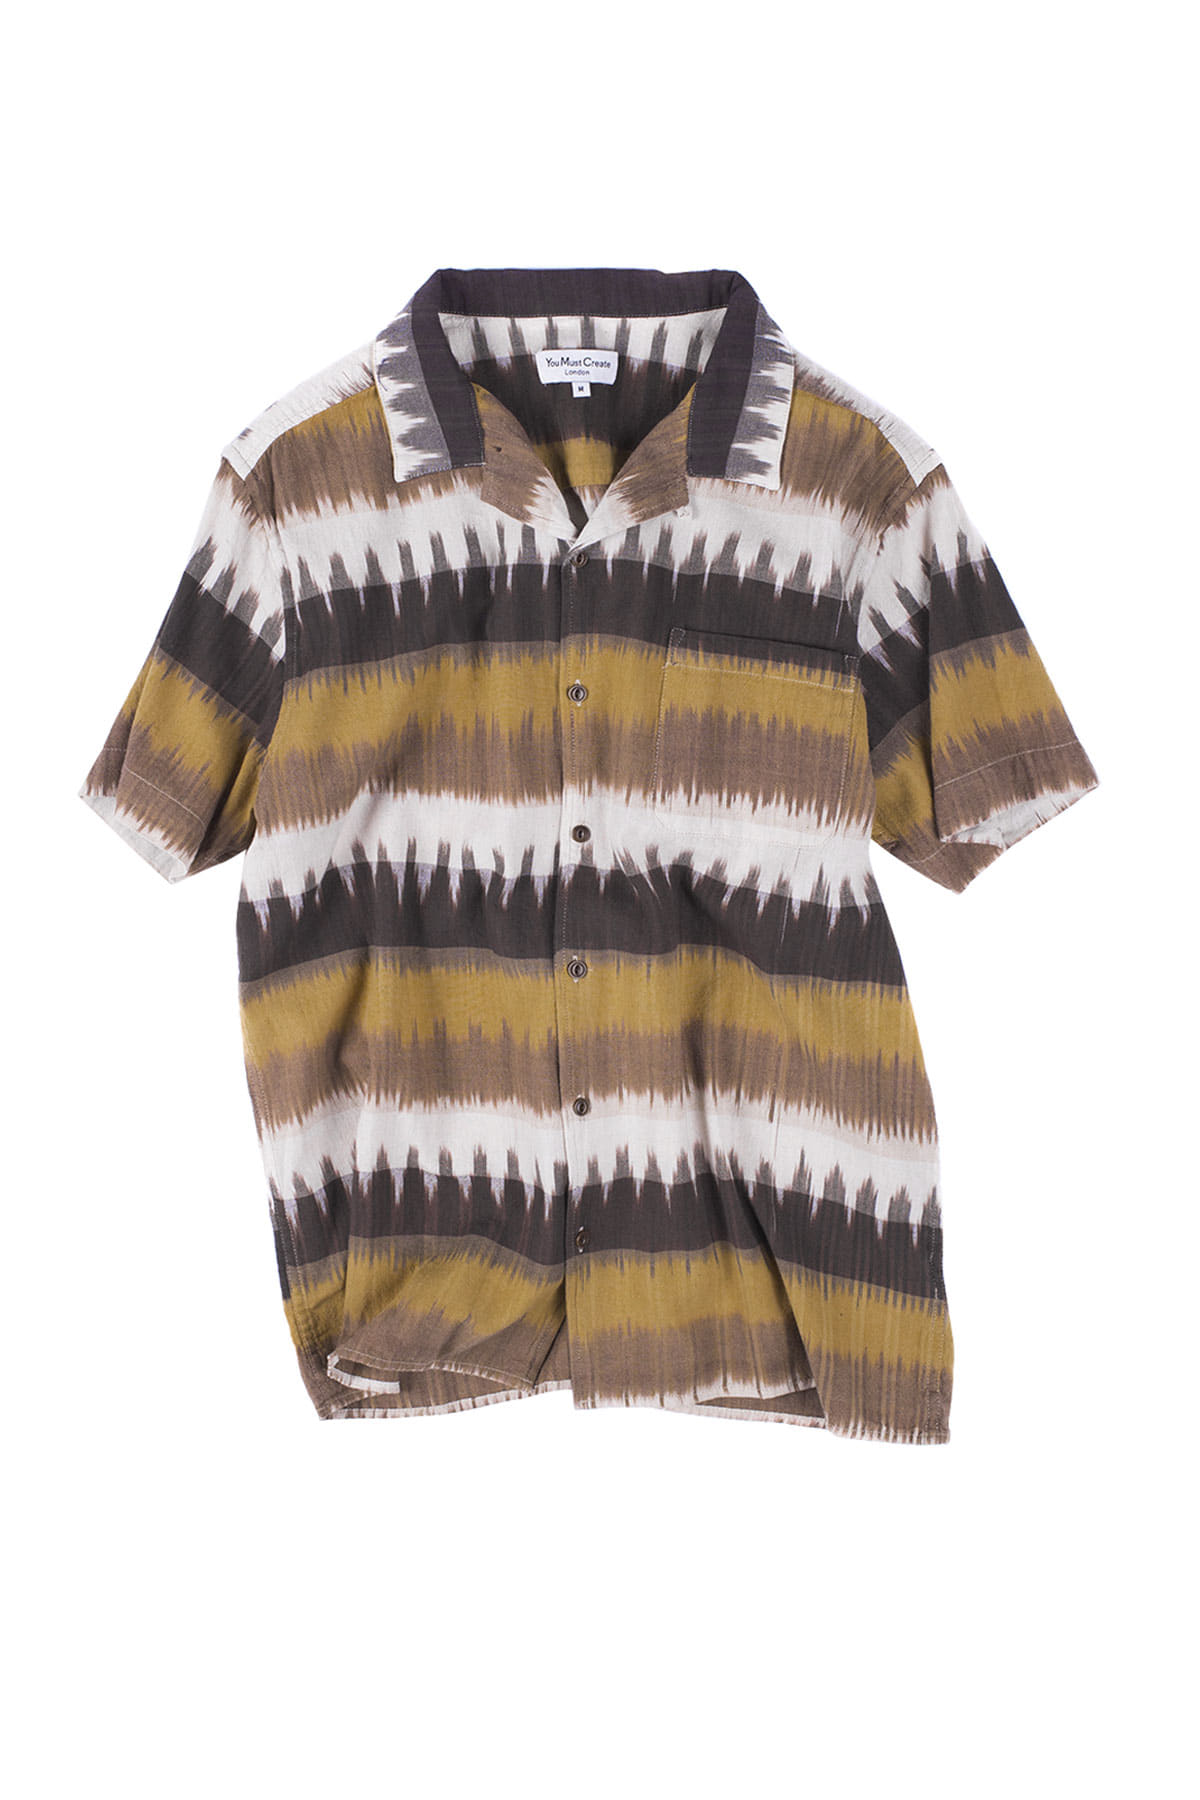 YMC : Malick Shirt (Brown)